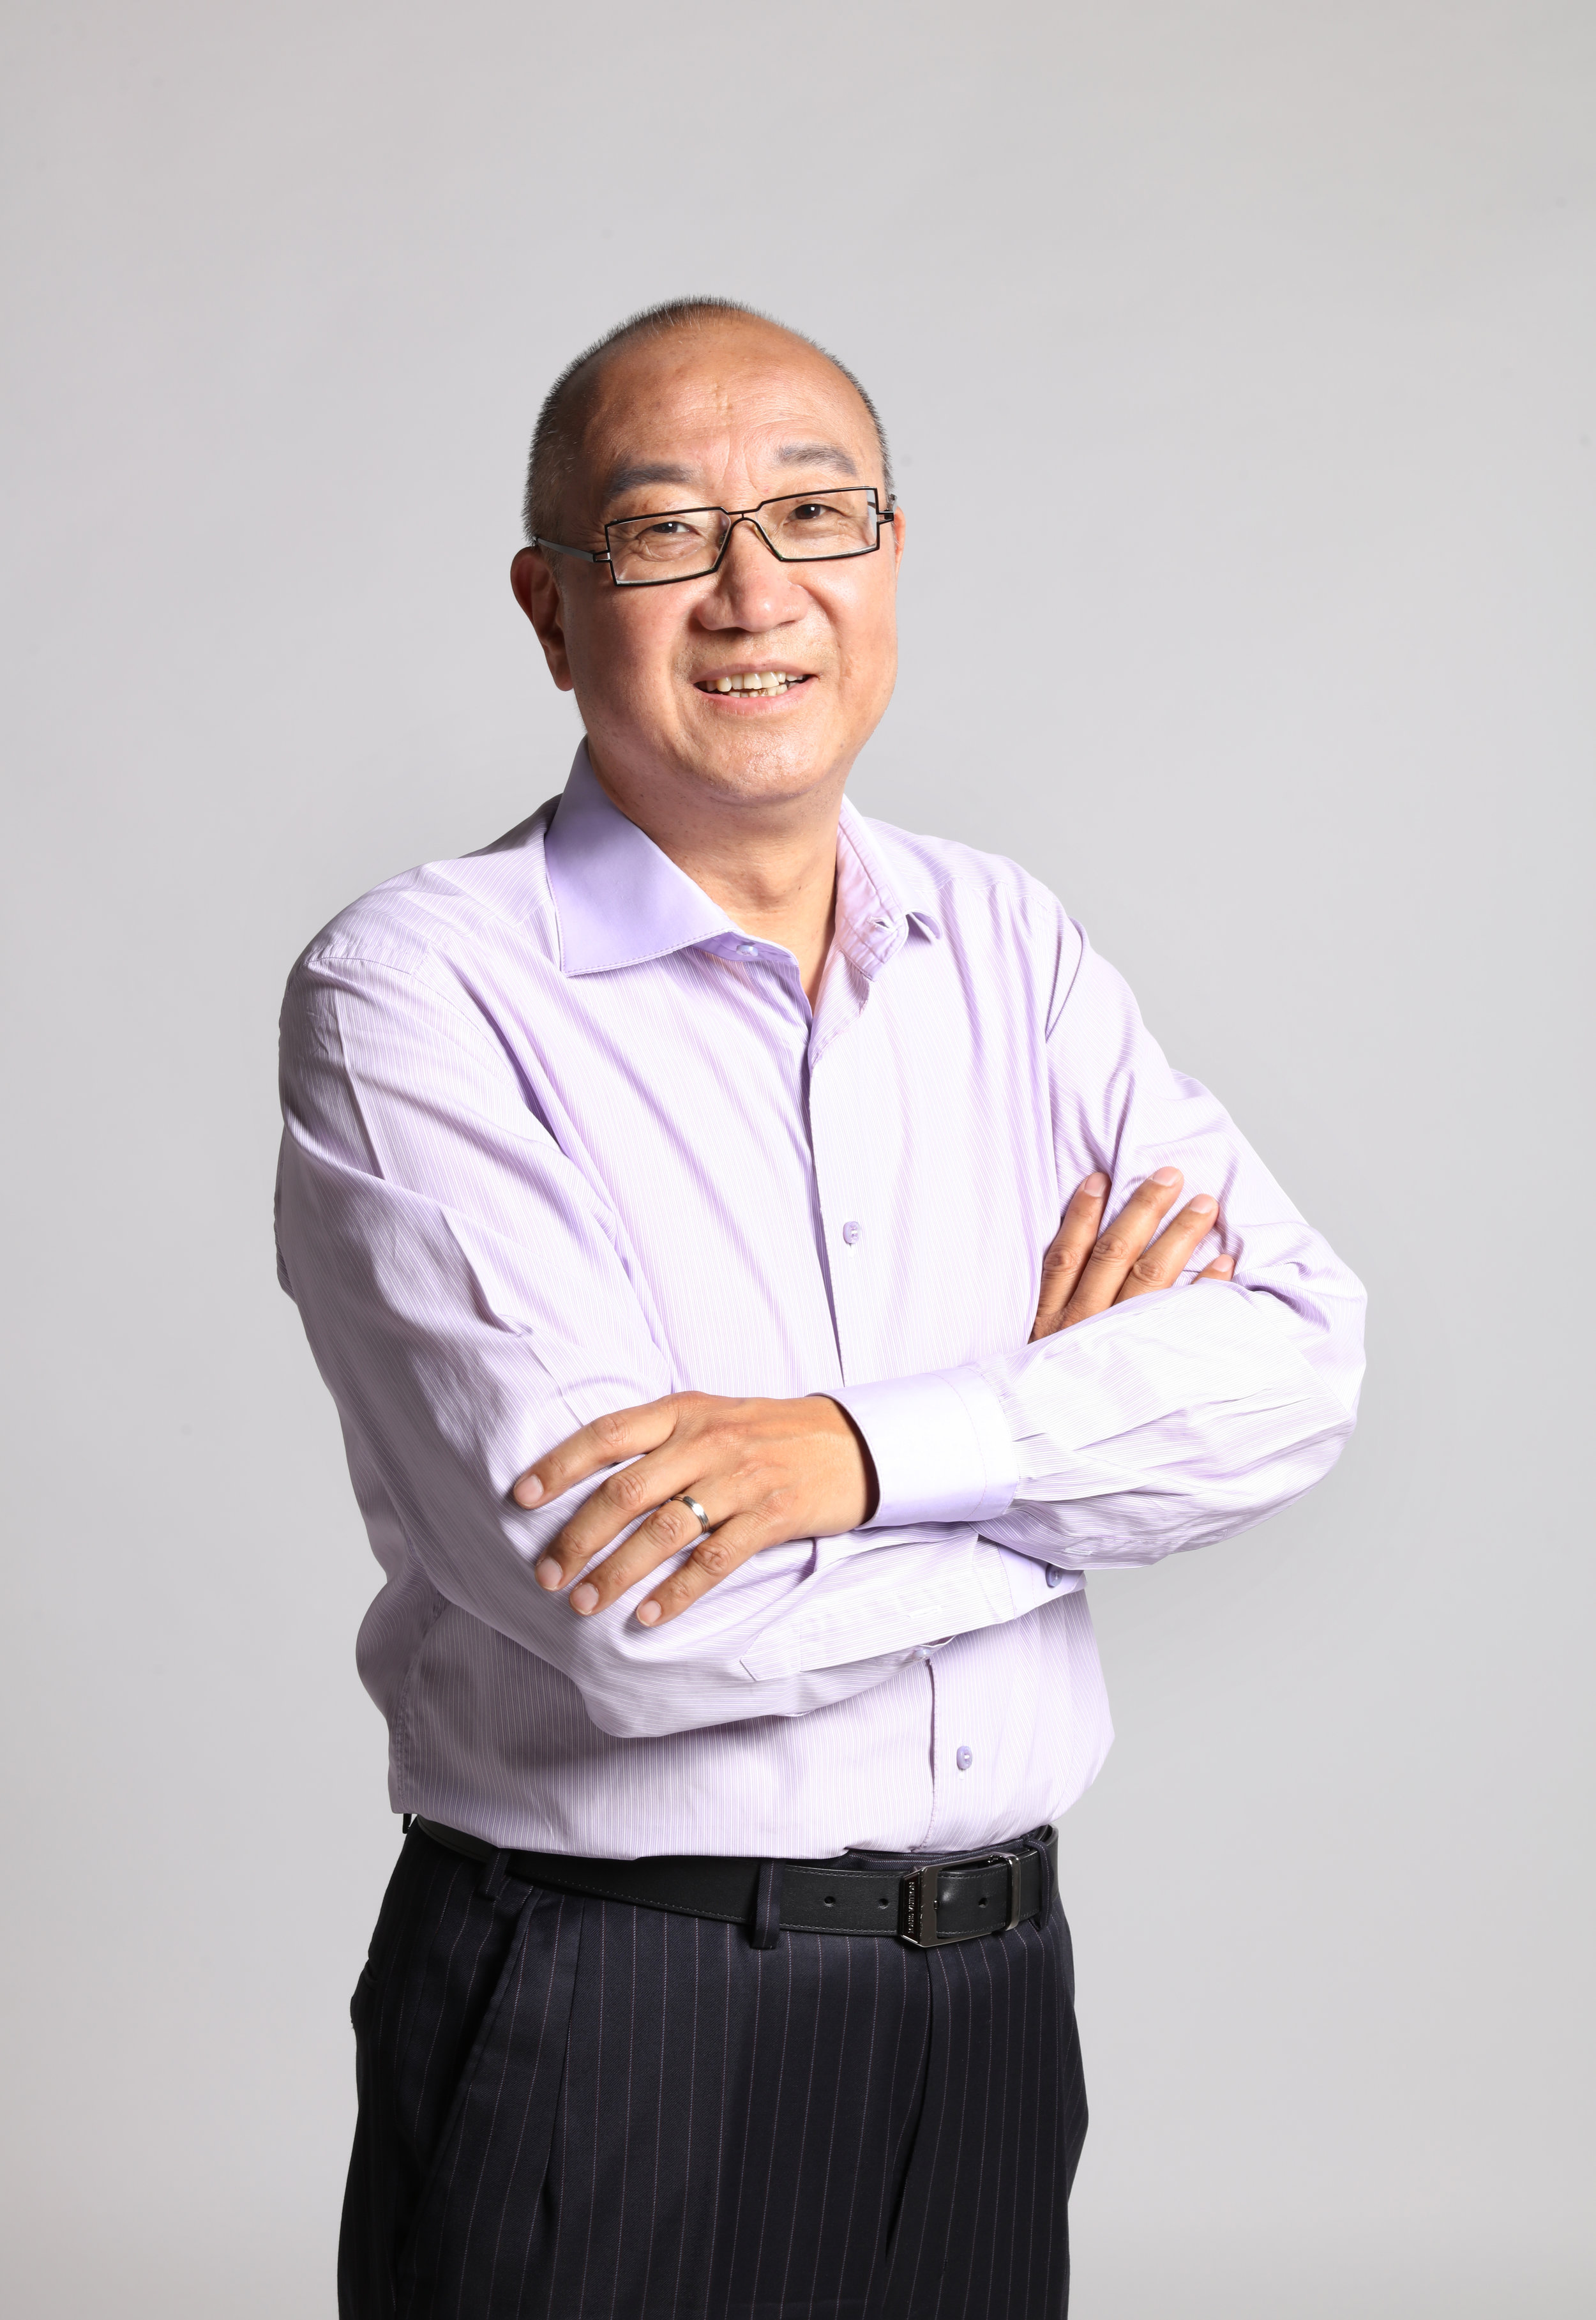 """Mr. Feng Lun - Founder of Fengzi,CEO of Yufeng CapitalFounder of Vantone HoldingsMr. Feng Lun founded Vantone Holdings Co., Ltd. in 1991, in which its subsidiary corporation Vantone Real Estate Co.,Ltd went public in 2000. For more than twenty years, Mr. Feng has devoted tremendous efforts to pursue a prosperous development in China's real estate industry, and promote the idea of entrepreneurial social responsibility among the public. In 1999, he co-founded the China Urban Realty Association (CURA) with other notable real estate businessmen including Vanke founder Wang Shi, and was elected to be the President in 2002. With years of continuous growth, CURA is now one of the very most influential real estate strategic alliances in China. Mr. Feng is also a board of trustees of Hupan University which was founded by Jack Ma. Not only does Mr. Feng Lun serve as a successful real estate entrepreneur, he also publishes a series of business management books. The books he published have been sold more than one million copies. Not surprisingly, Mr. Feng has been praised by the public to be the """"Philosopher of the Real Estate Industry"""". In 2015, Mr. Feng established Hangzhou Fengzi Arts and Entertainment Co., Ltd."""